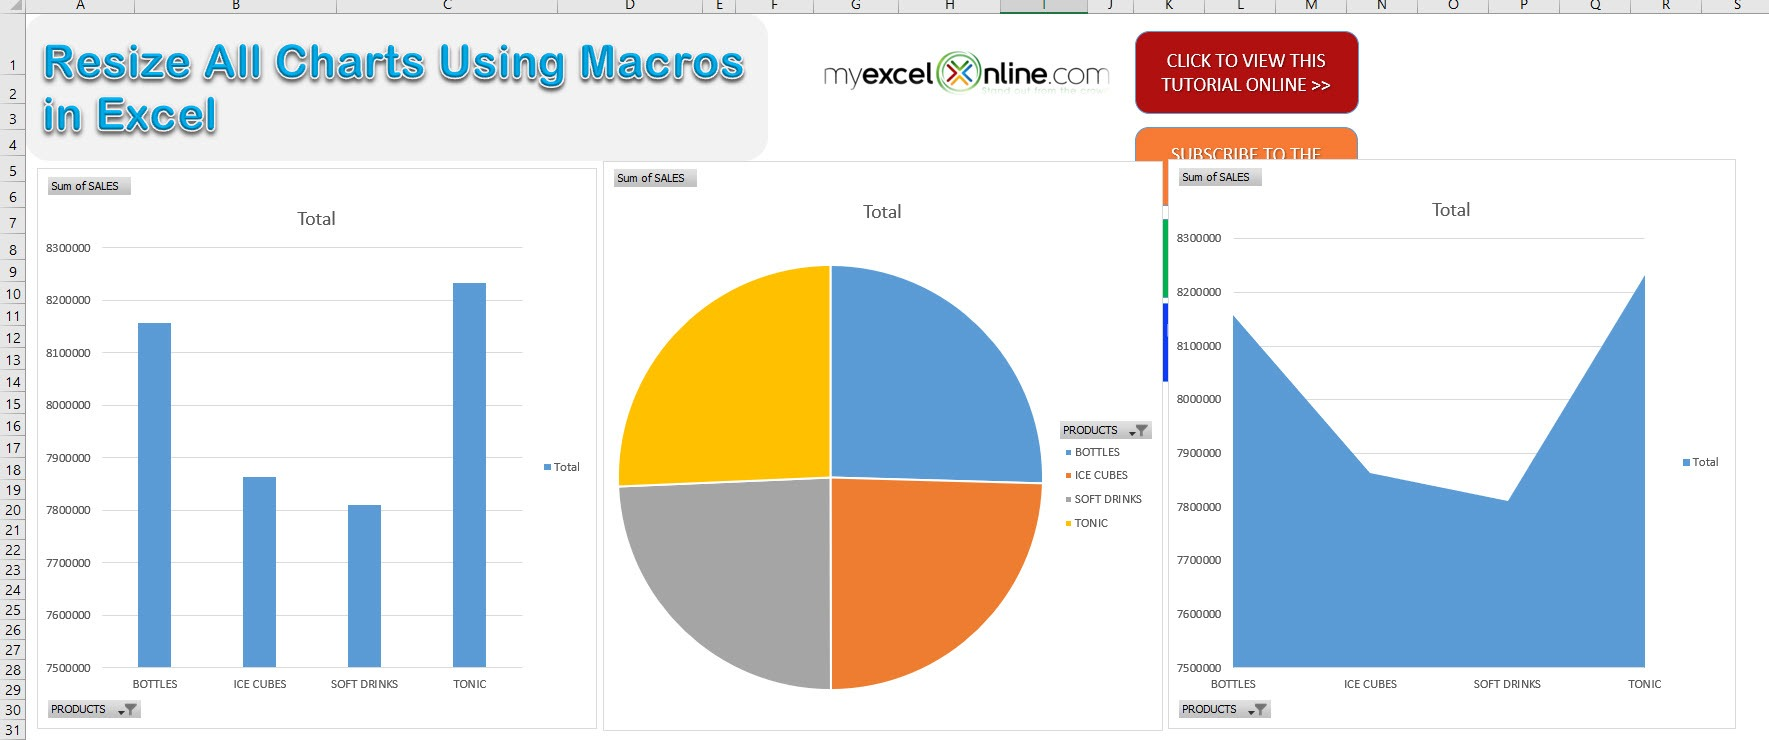 Resize All Charts Using Macros In Excel | MyExcelOnline